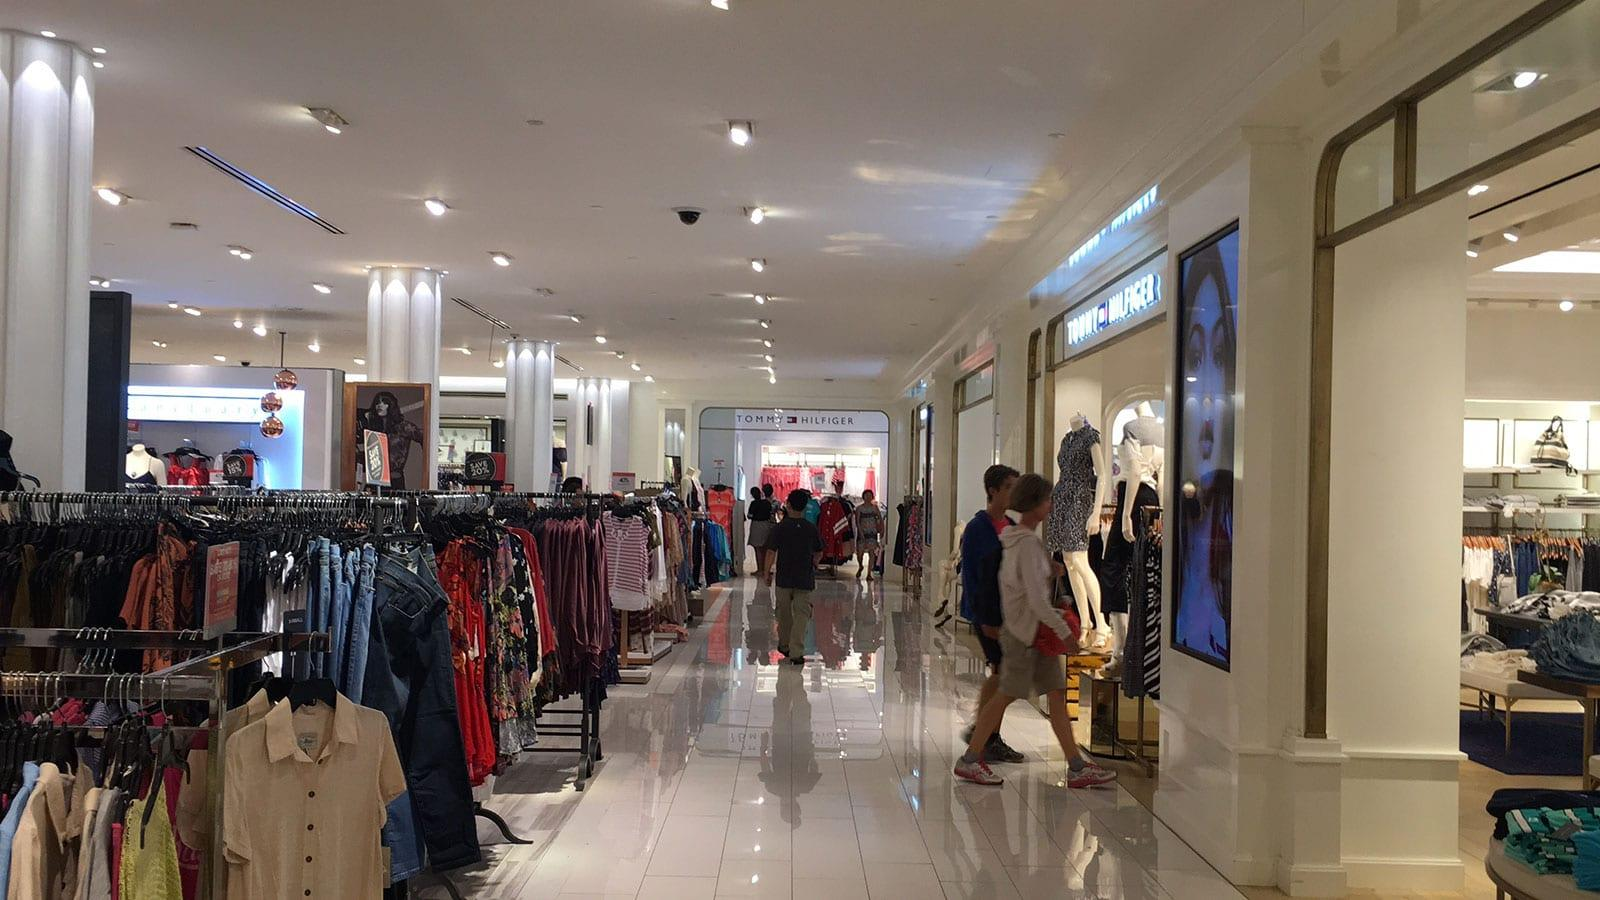 Bettwäsche Ralph Lauren Der Ultimative Macy's Shopping-guide | Loving New York